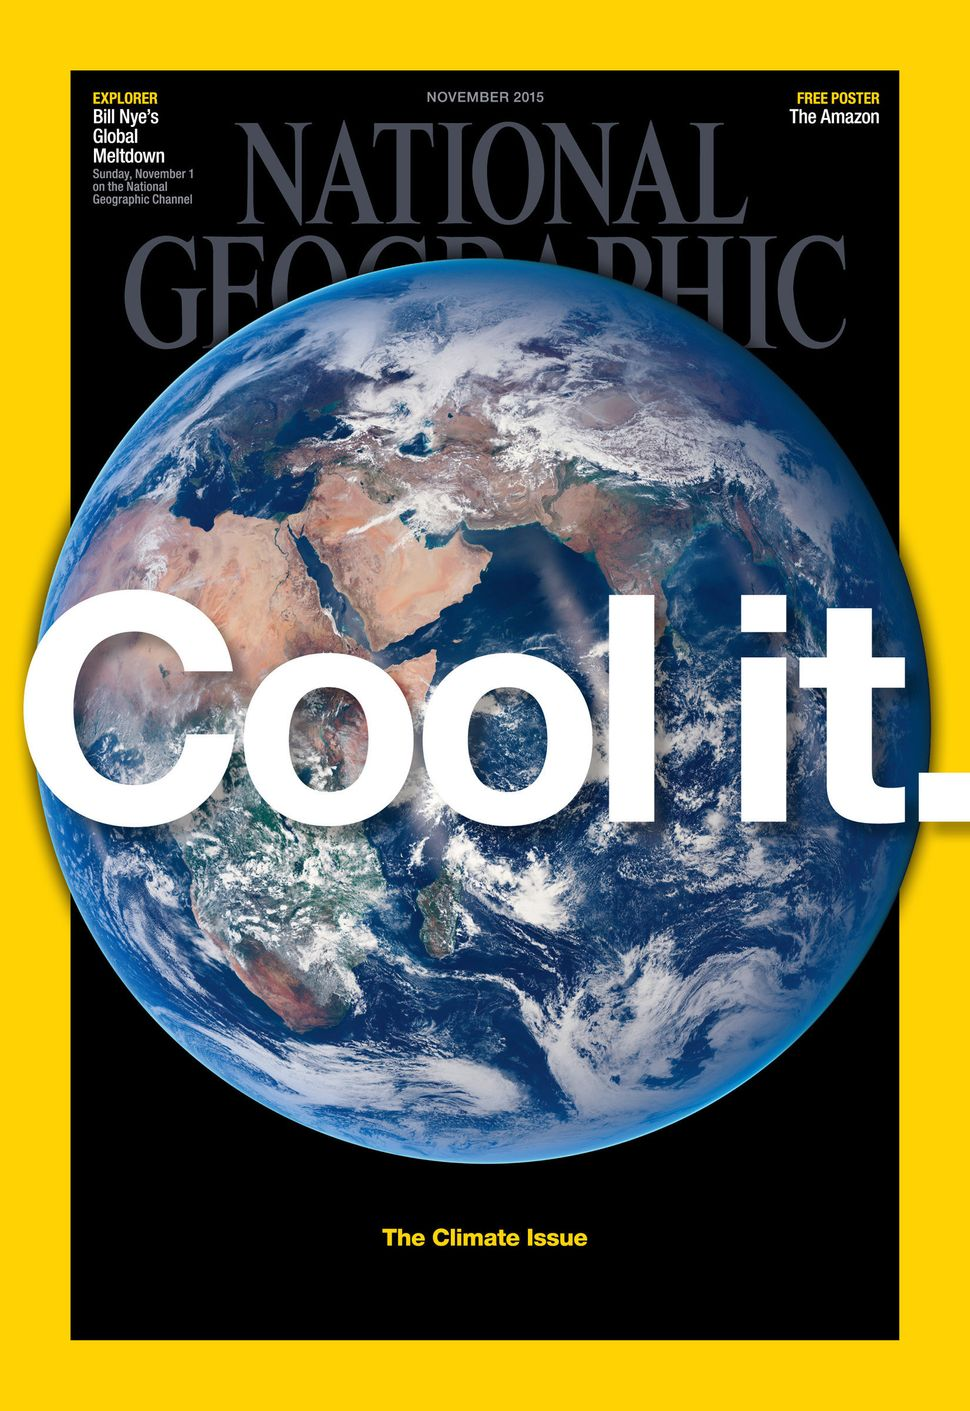 Jazbec's photos are featured in National Geographic's November 2015 issue on climate change.